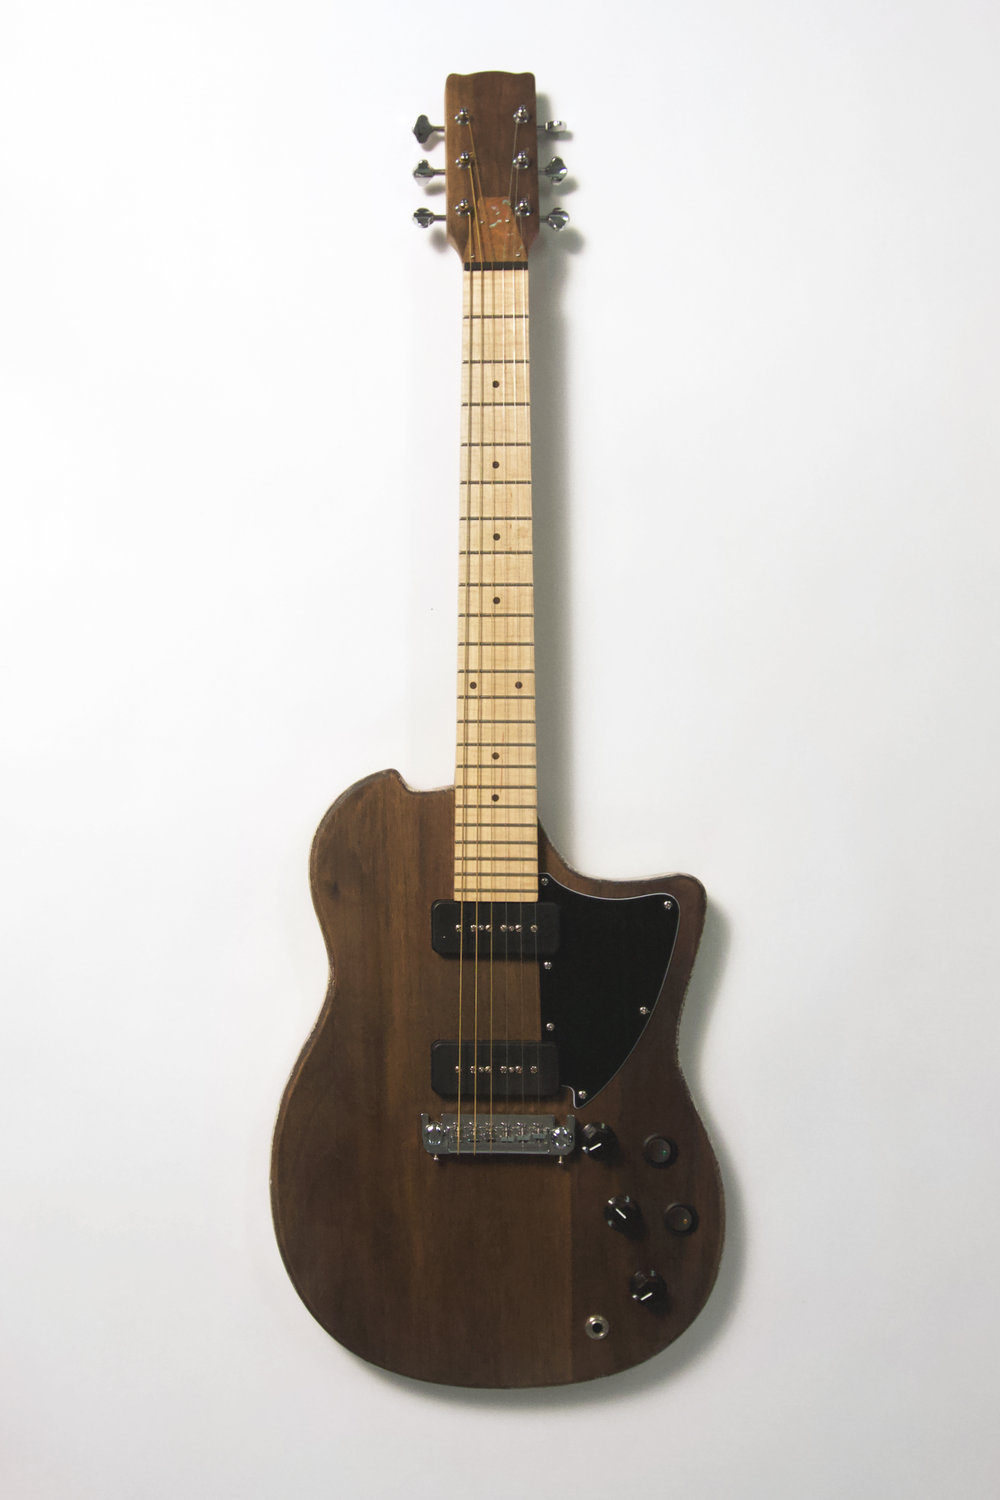 "Spong Jr. Black Guitar / Walnut, Maple, Copper, ABS / 30"" x 14"" x 2"" / 2017      Specs – P90 pickups, Wilkinson 16:1 Tuners, 1 vol 2 tones (0.047uF orange drop, 0.1uF metalized polyester)"